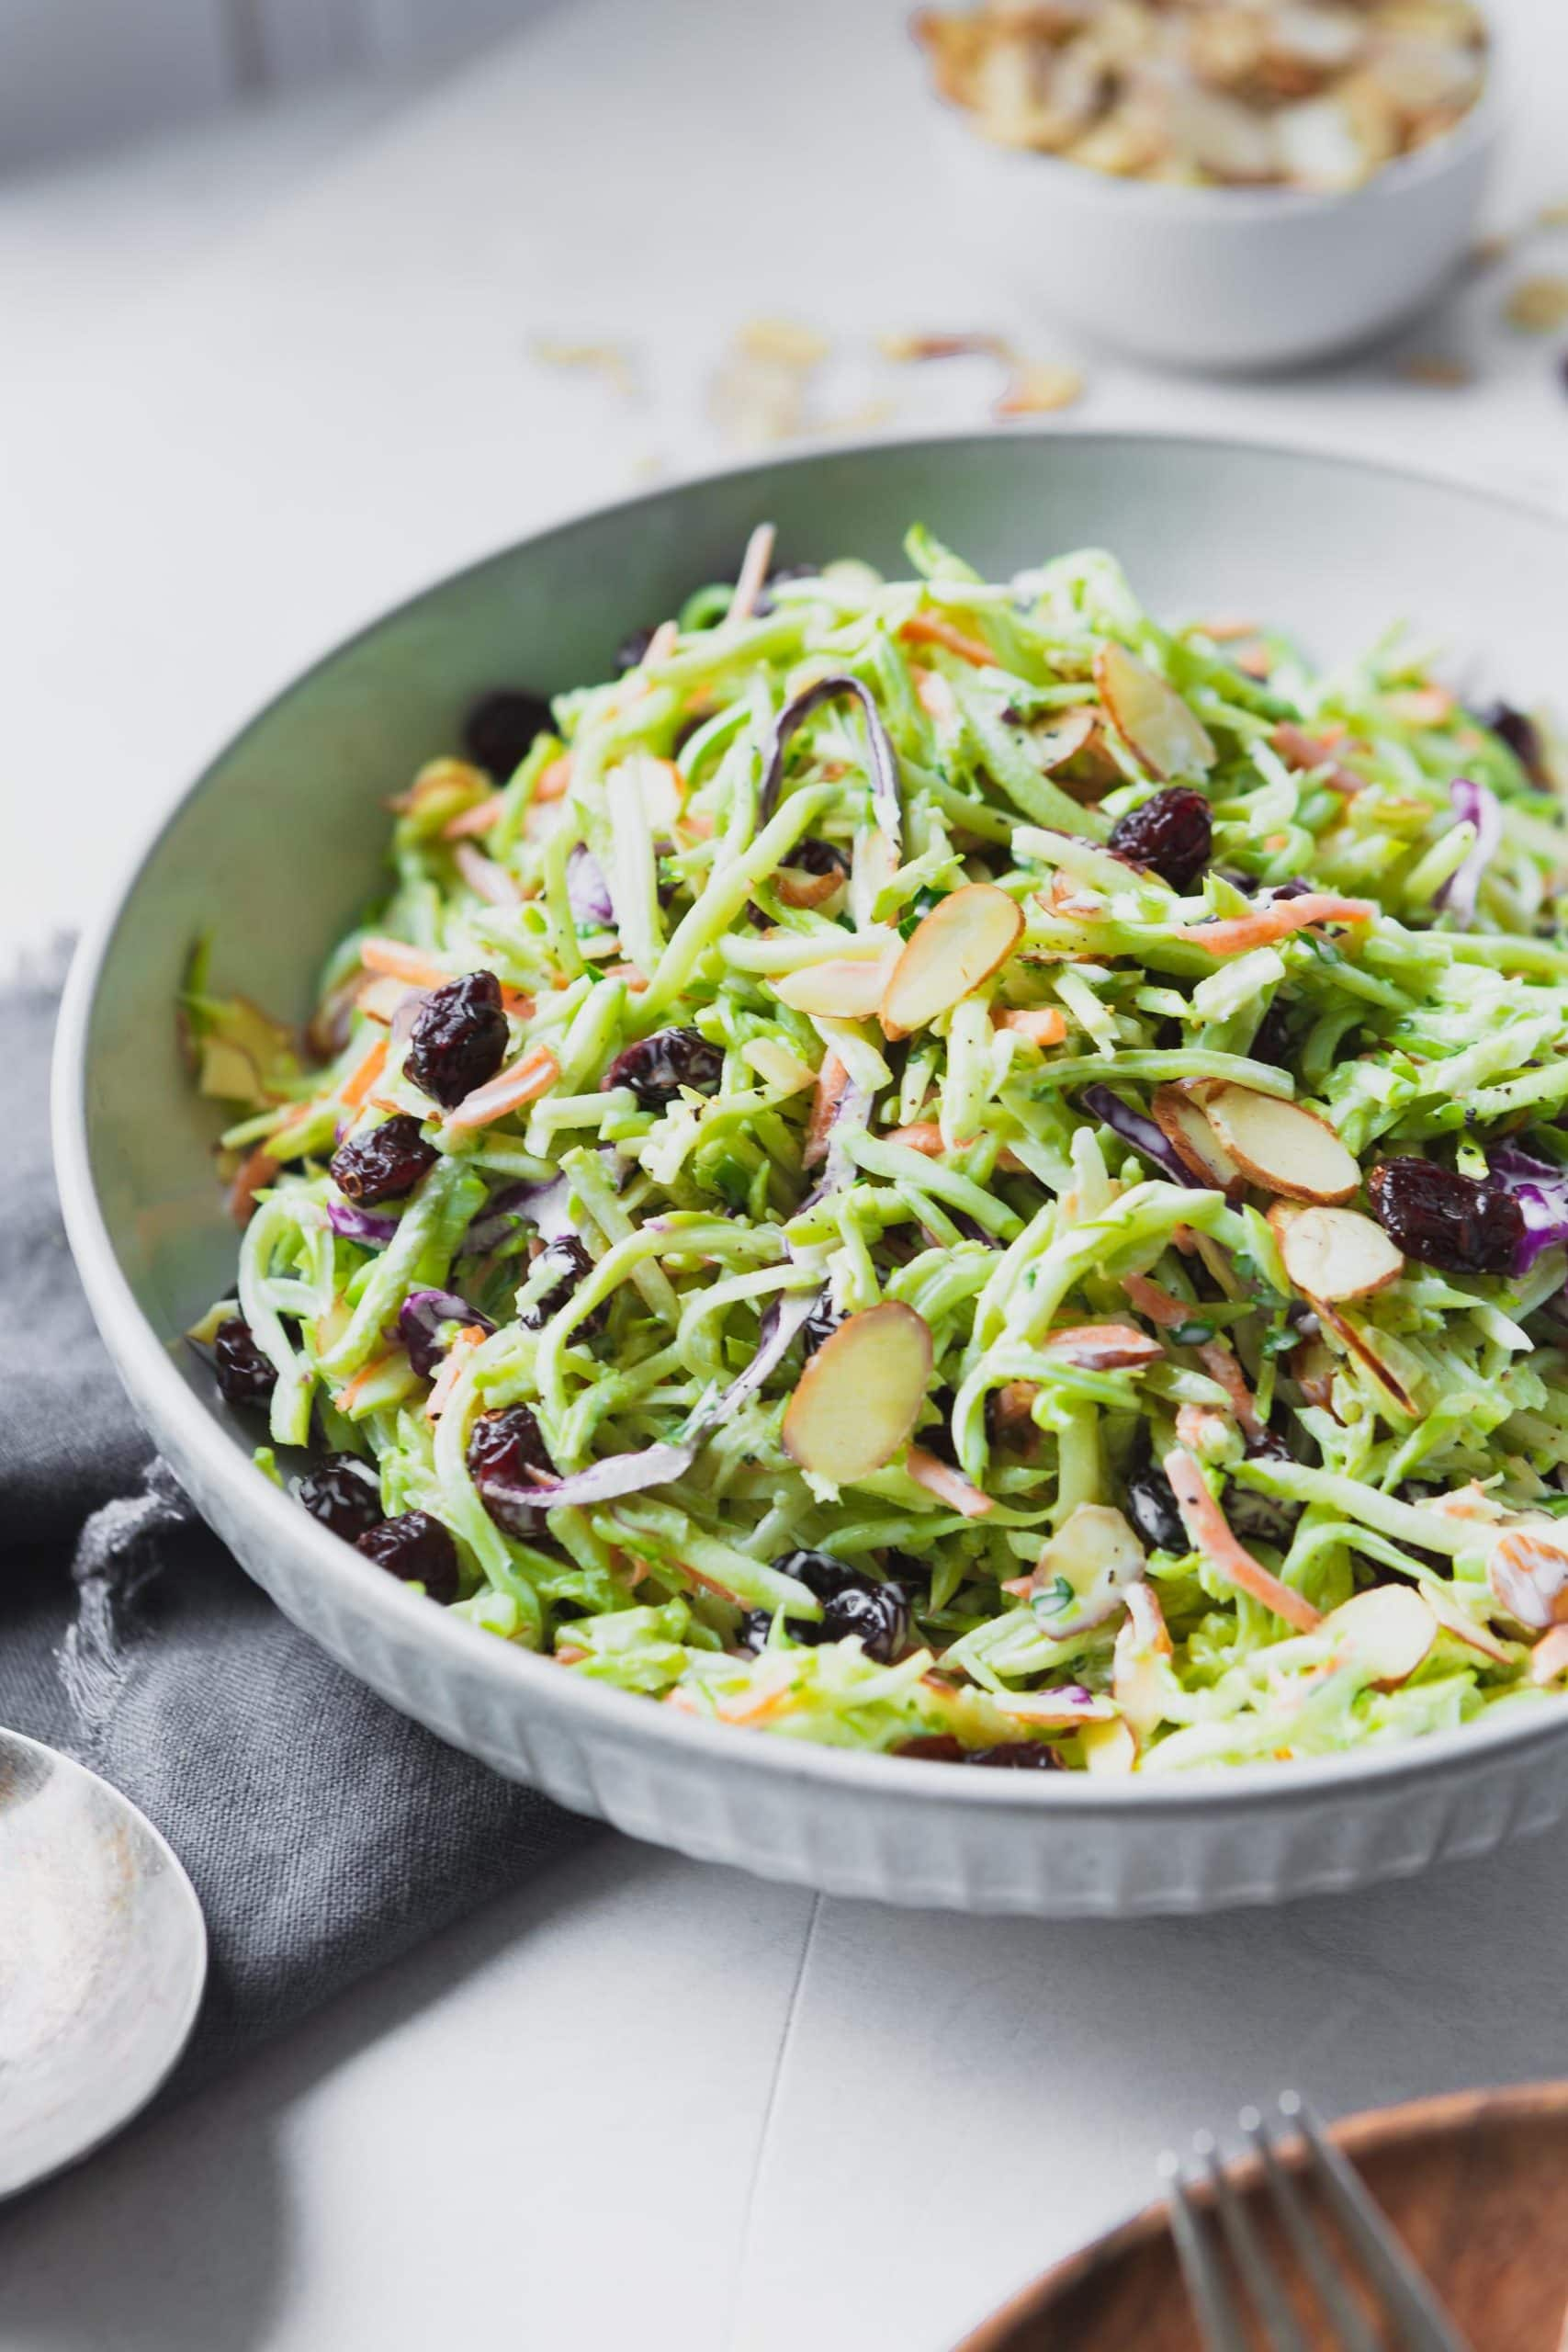 a photo of a big white ceramic bowl full of broccoli slaw topped with raisins and sliced almonds